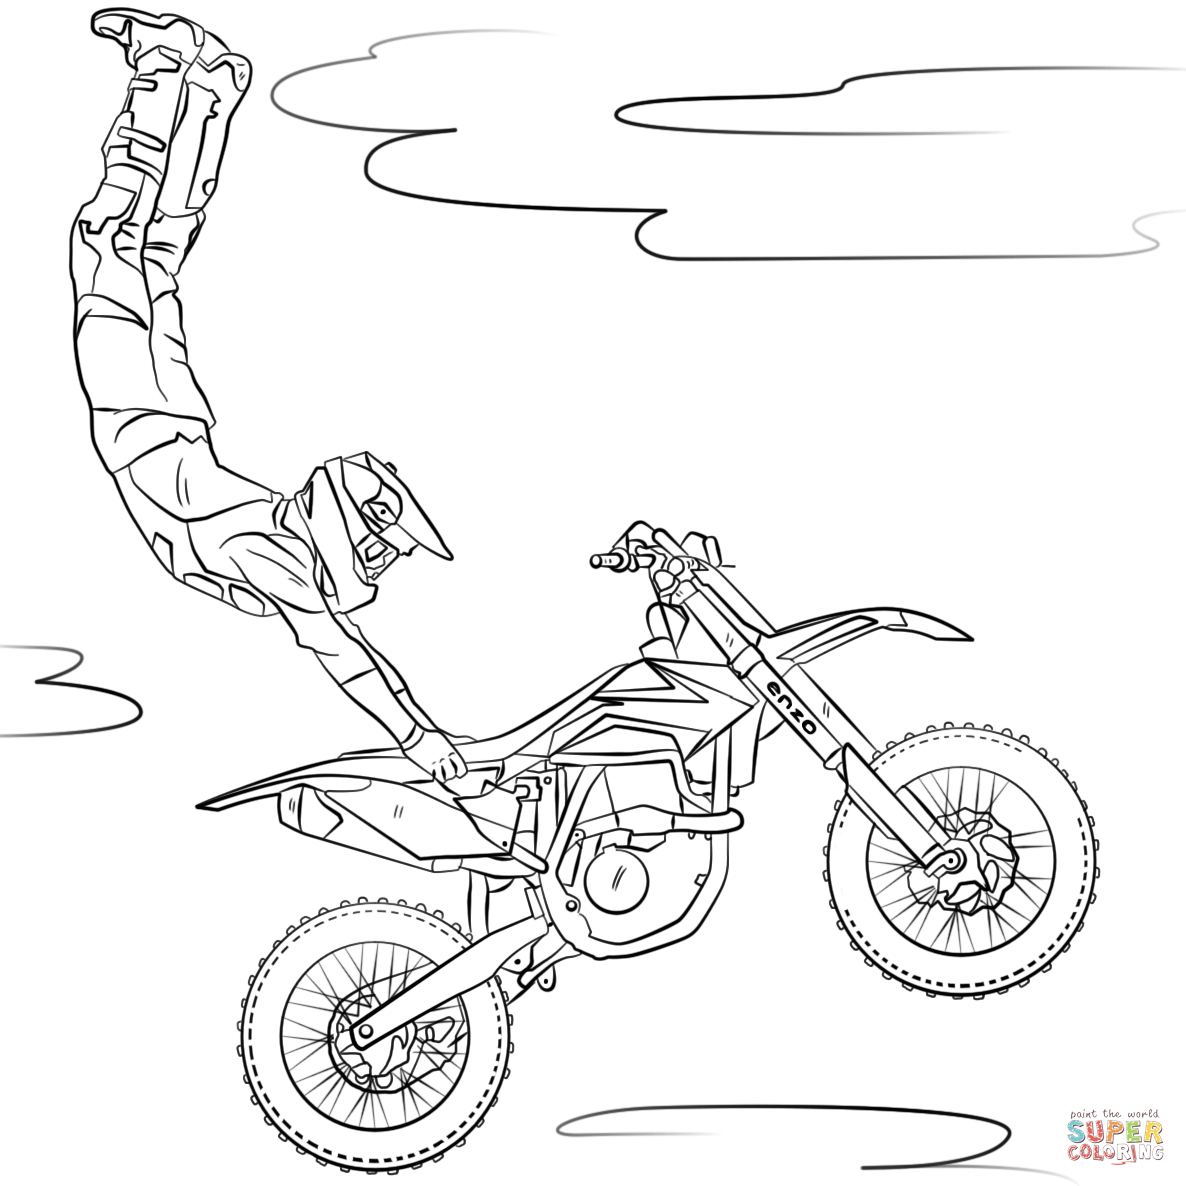 Motorcycle Coloring Pages Motorcycles Coloring Pages Free Coloring Pages